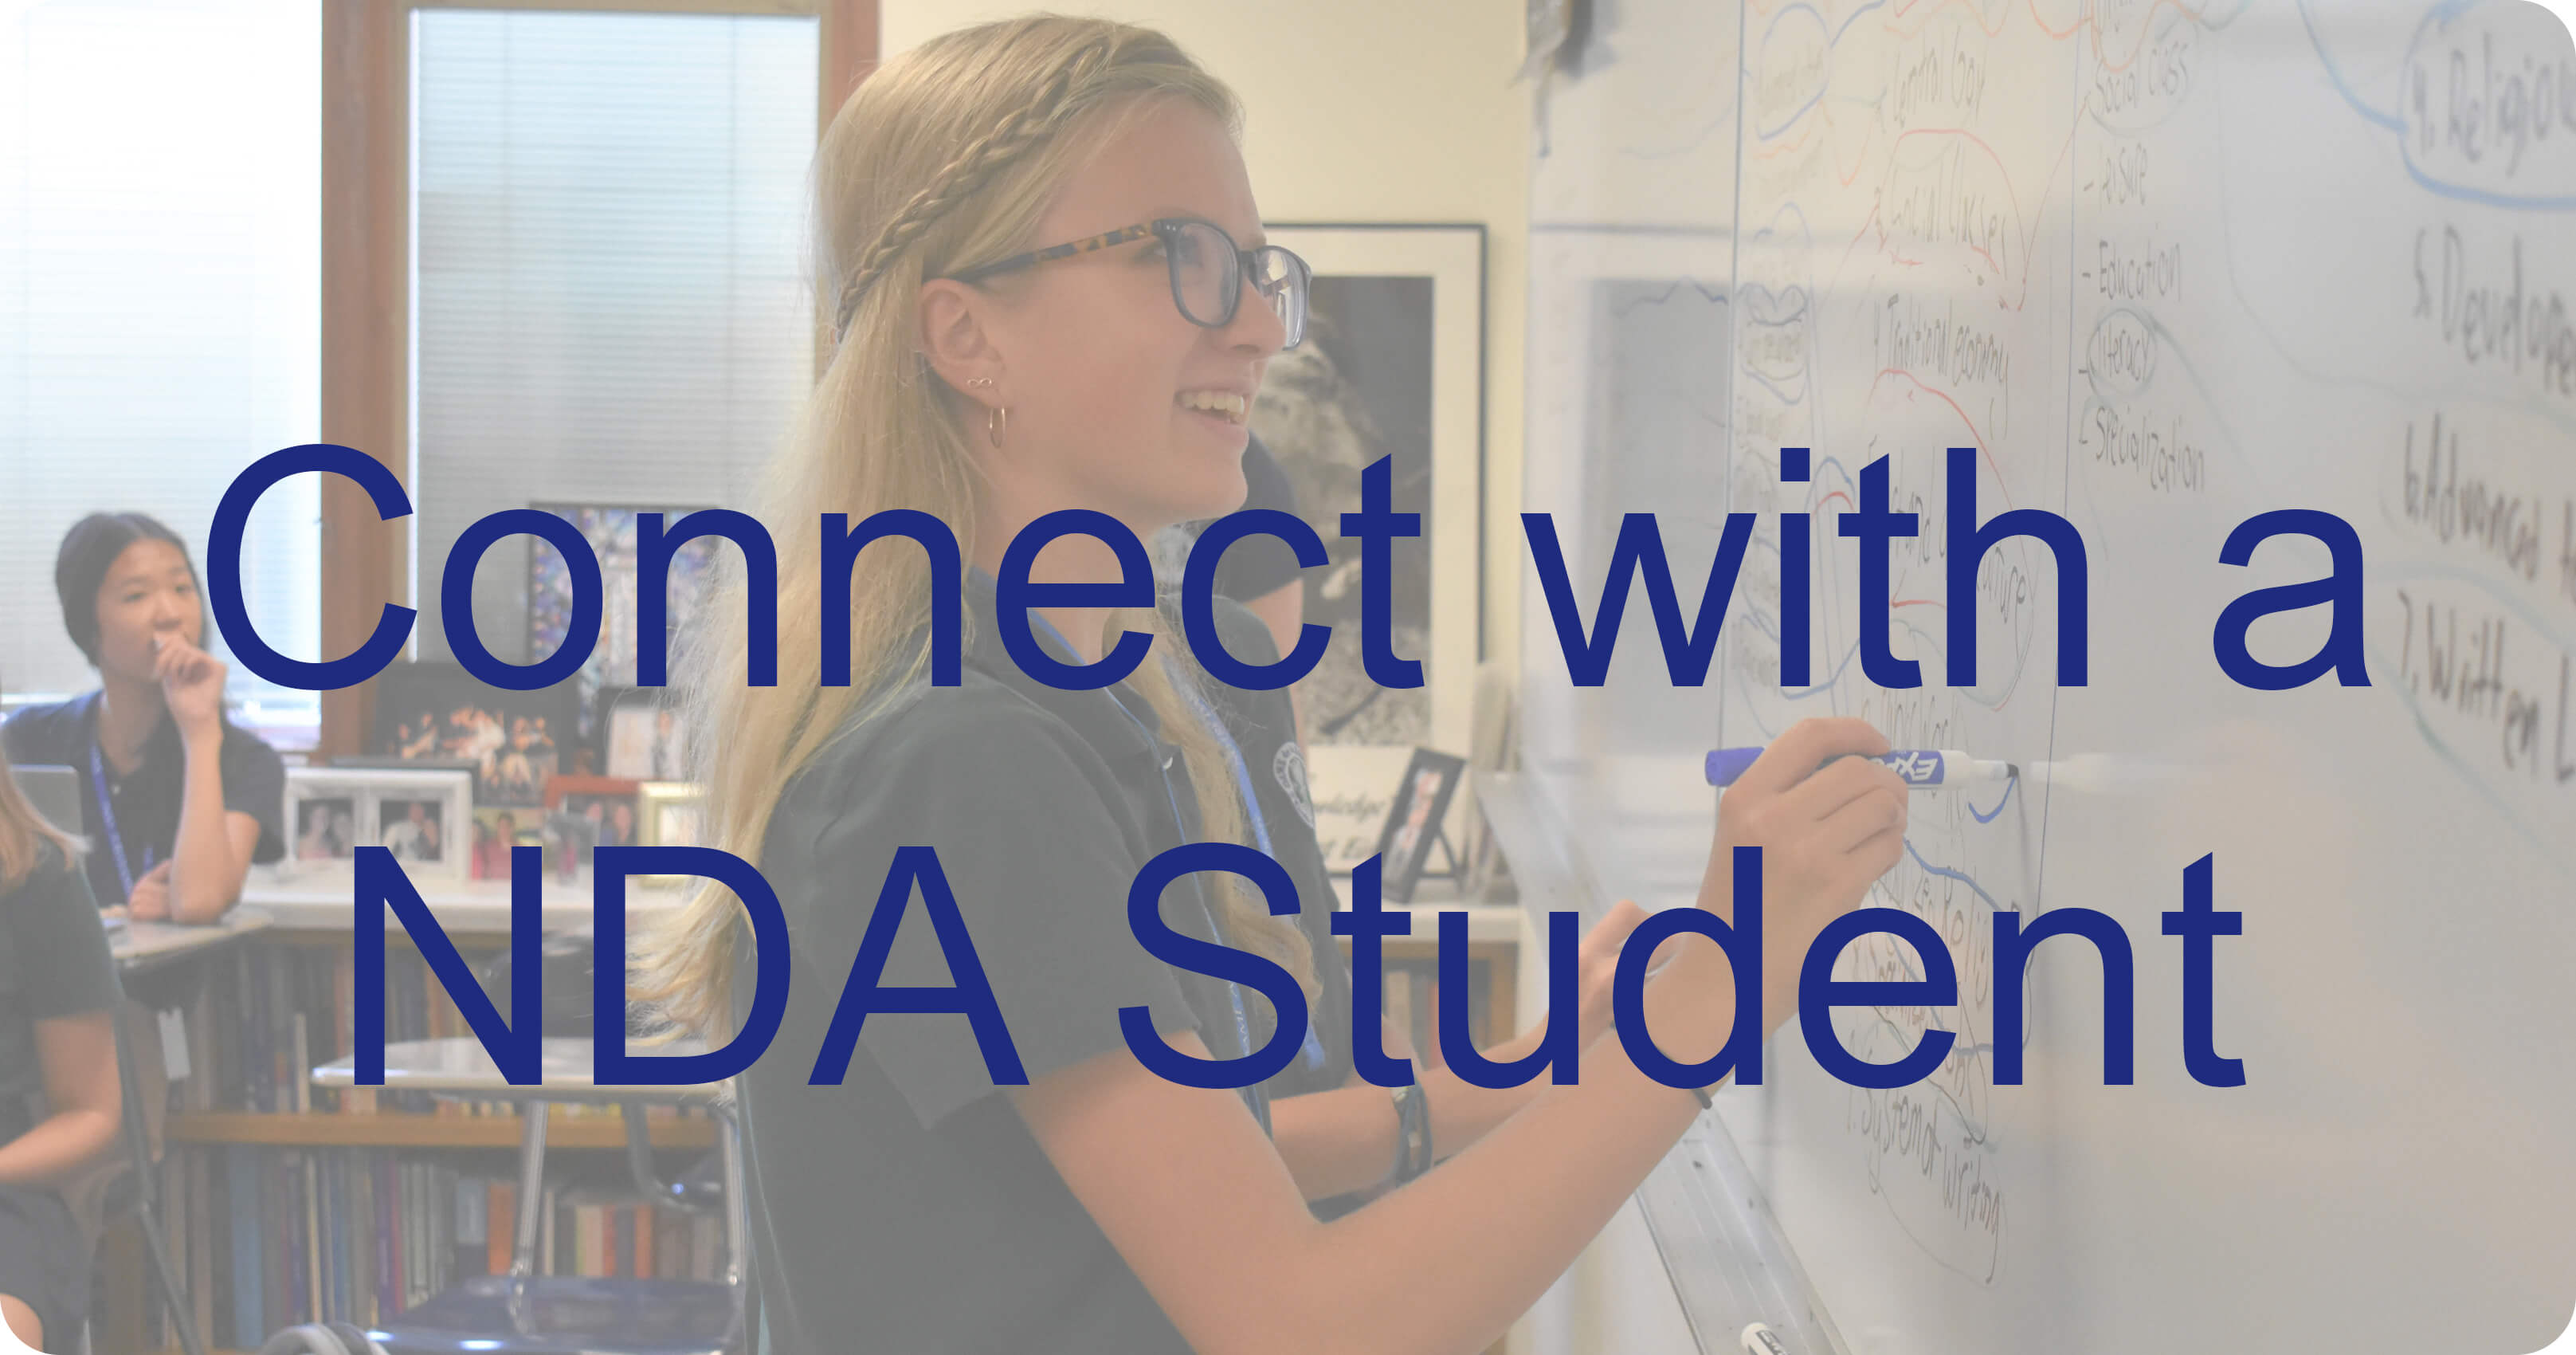 Photo of student at marker board with text saying Connect with a NDA Student